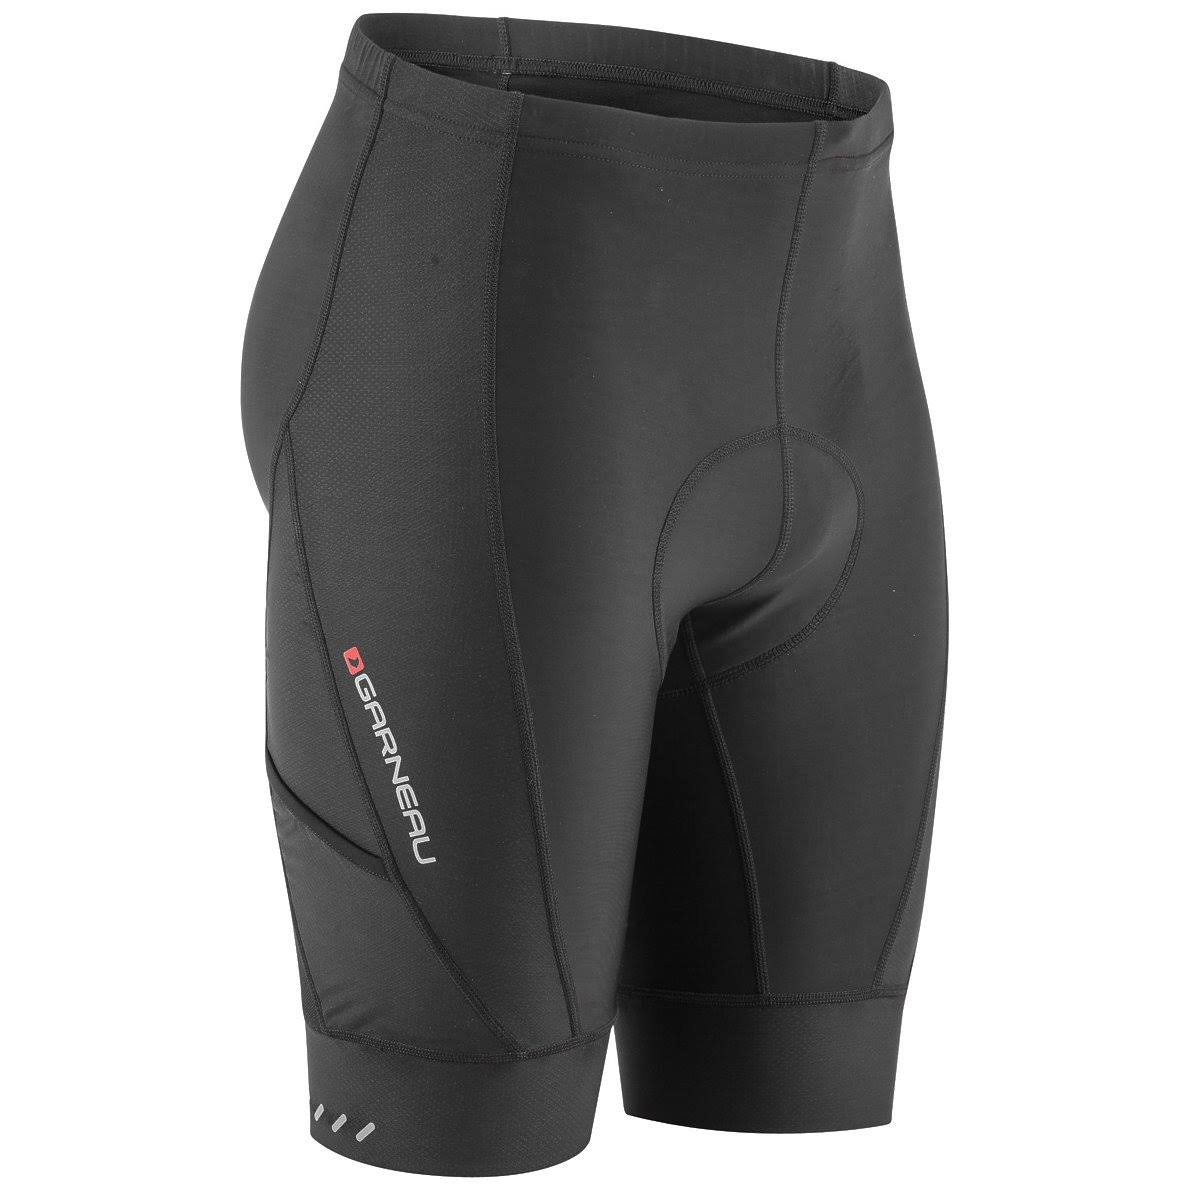 Louis Garneau 2017 Men's Optimum Cycling Shorts - Black, Small